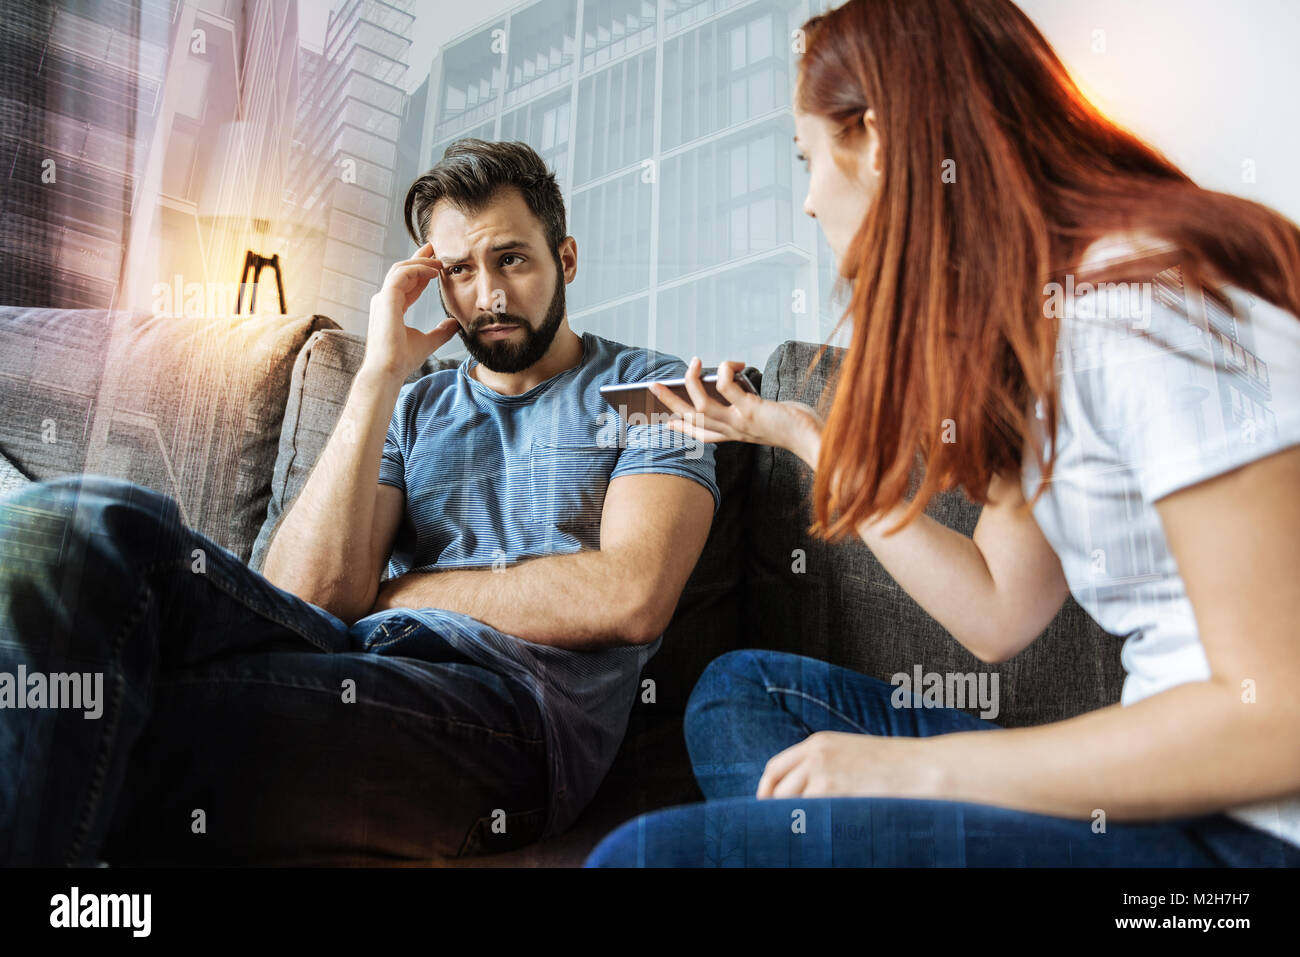 Jealous woman showing a phone to her boyfriend while having suspicions - Stock Image